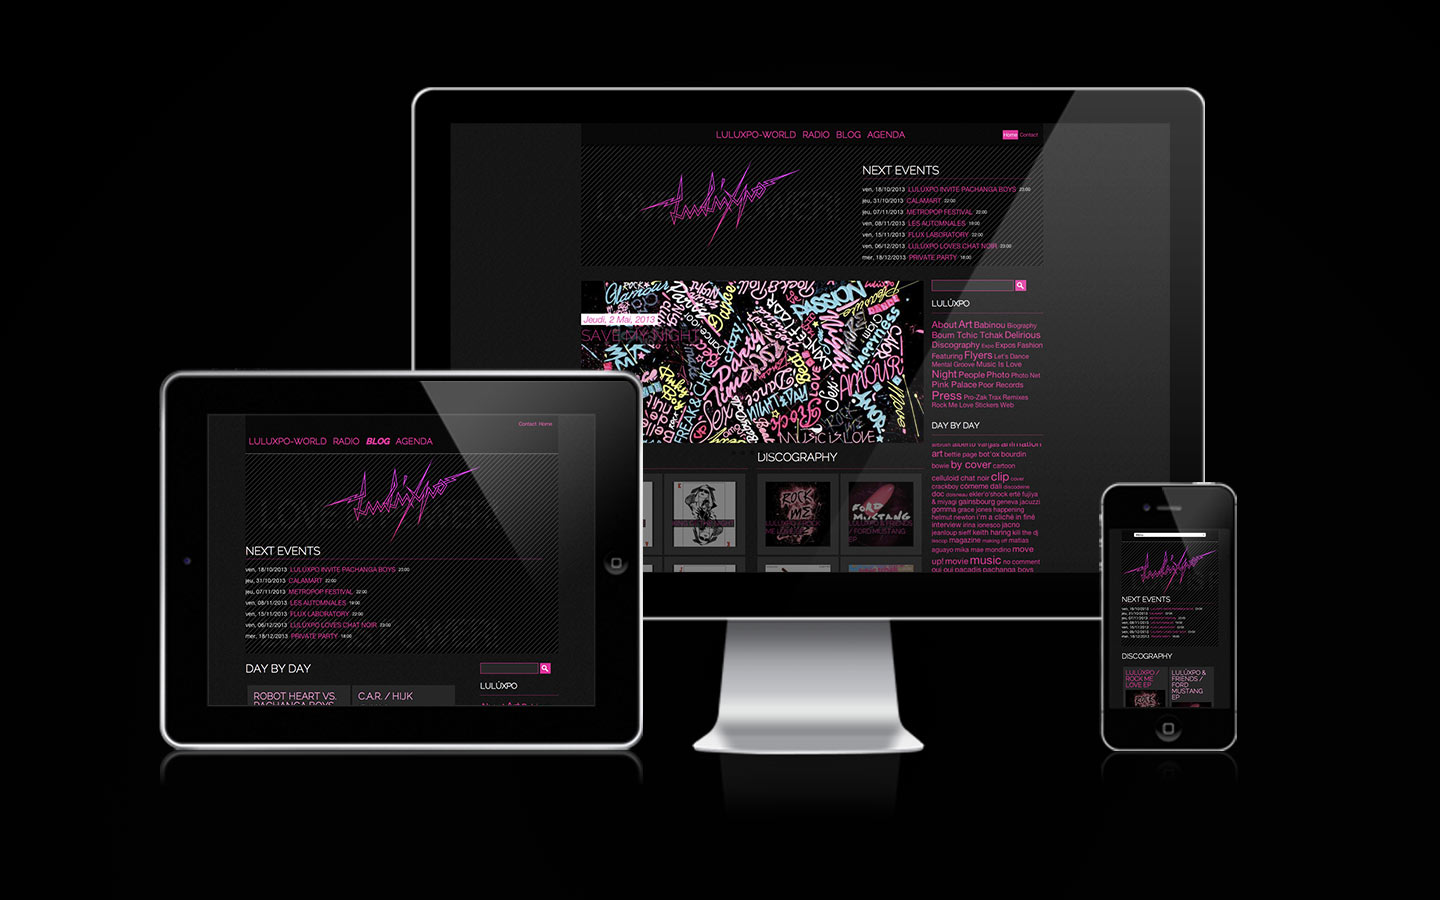 LuLúxpo Website - Laurent Lemoigne - Donanubis - Don Anubis - Graphic Design - Web Design - Webdesign - Drupal - Responsive - Love is Power - Geneva - Switzerland - Electro - Pink - Glamour -  - Art - Music - Party - Festival - Event